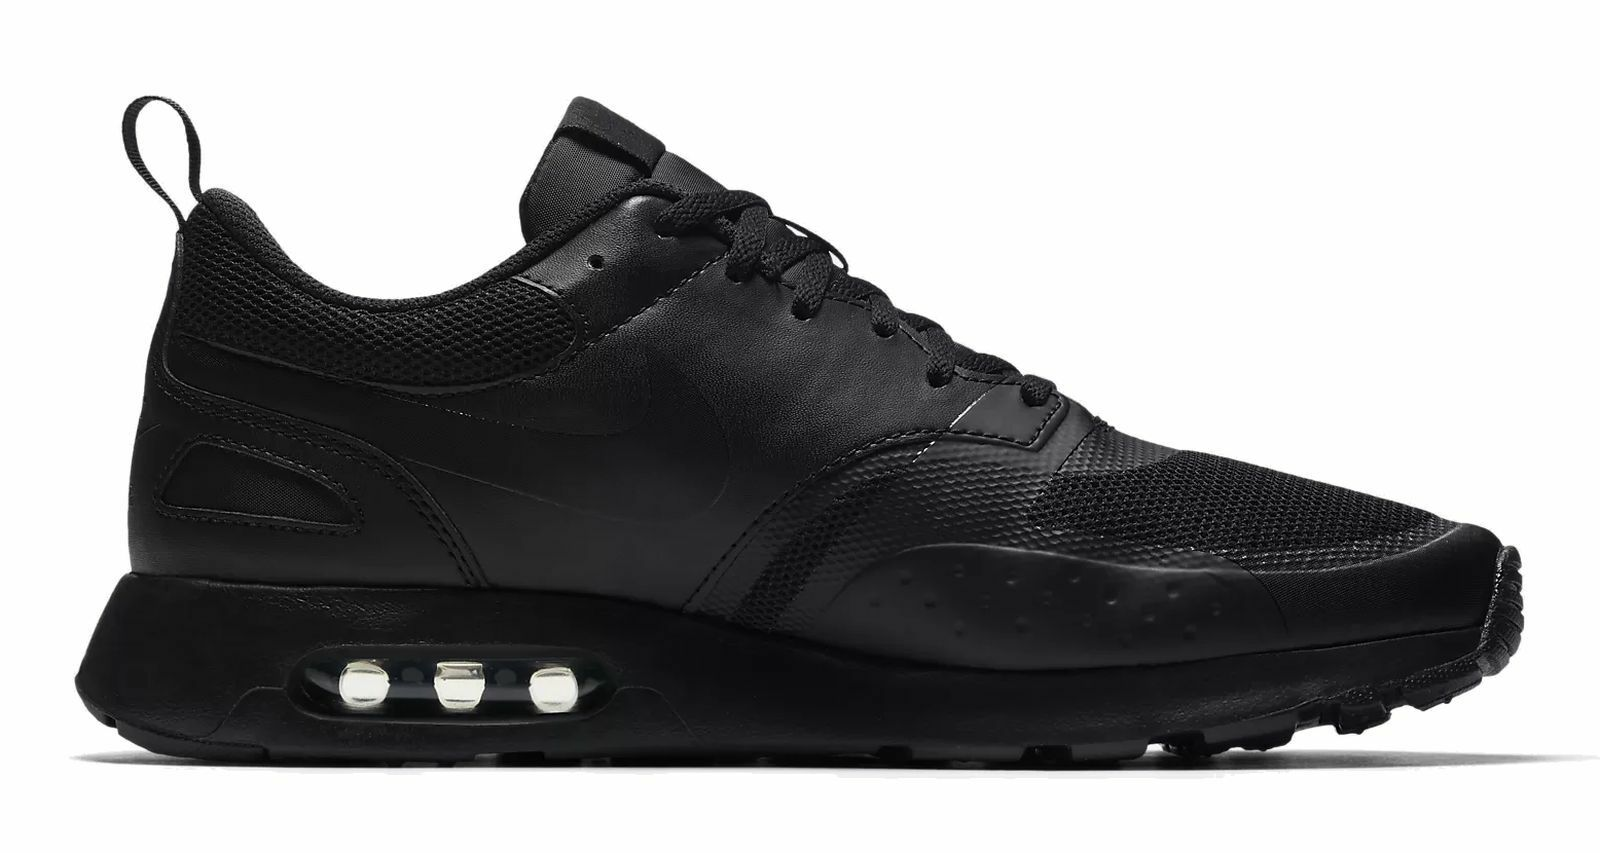 competitive price bb57d 7475e ... Nike Nike Nike Men s Casual Shoes Air Max Vision Black 311ad8 ...